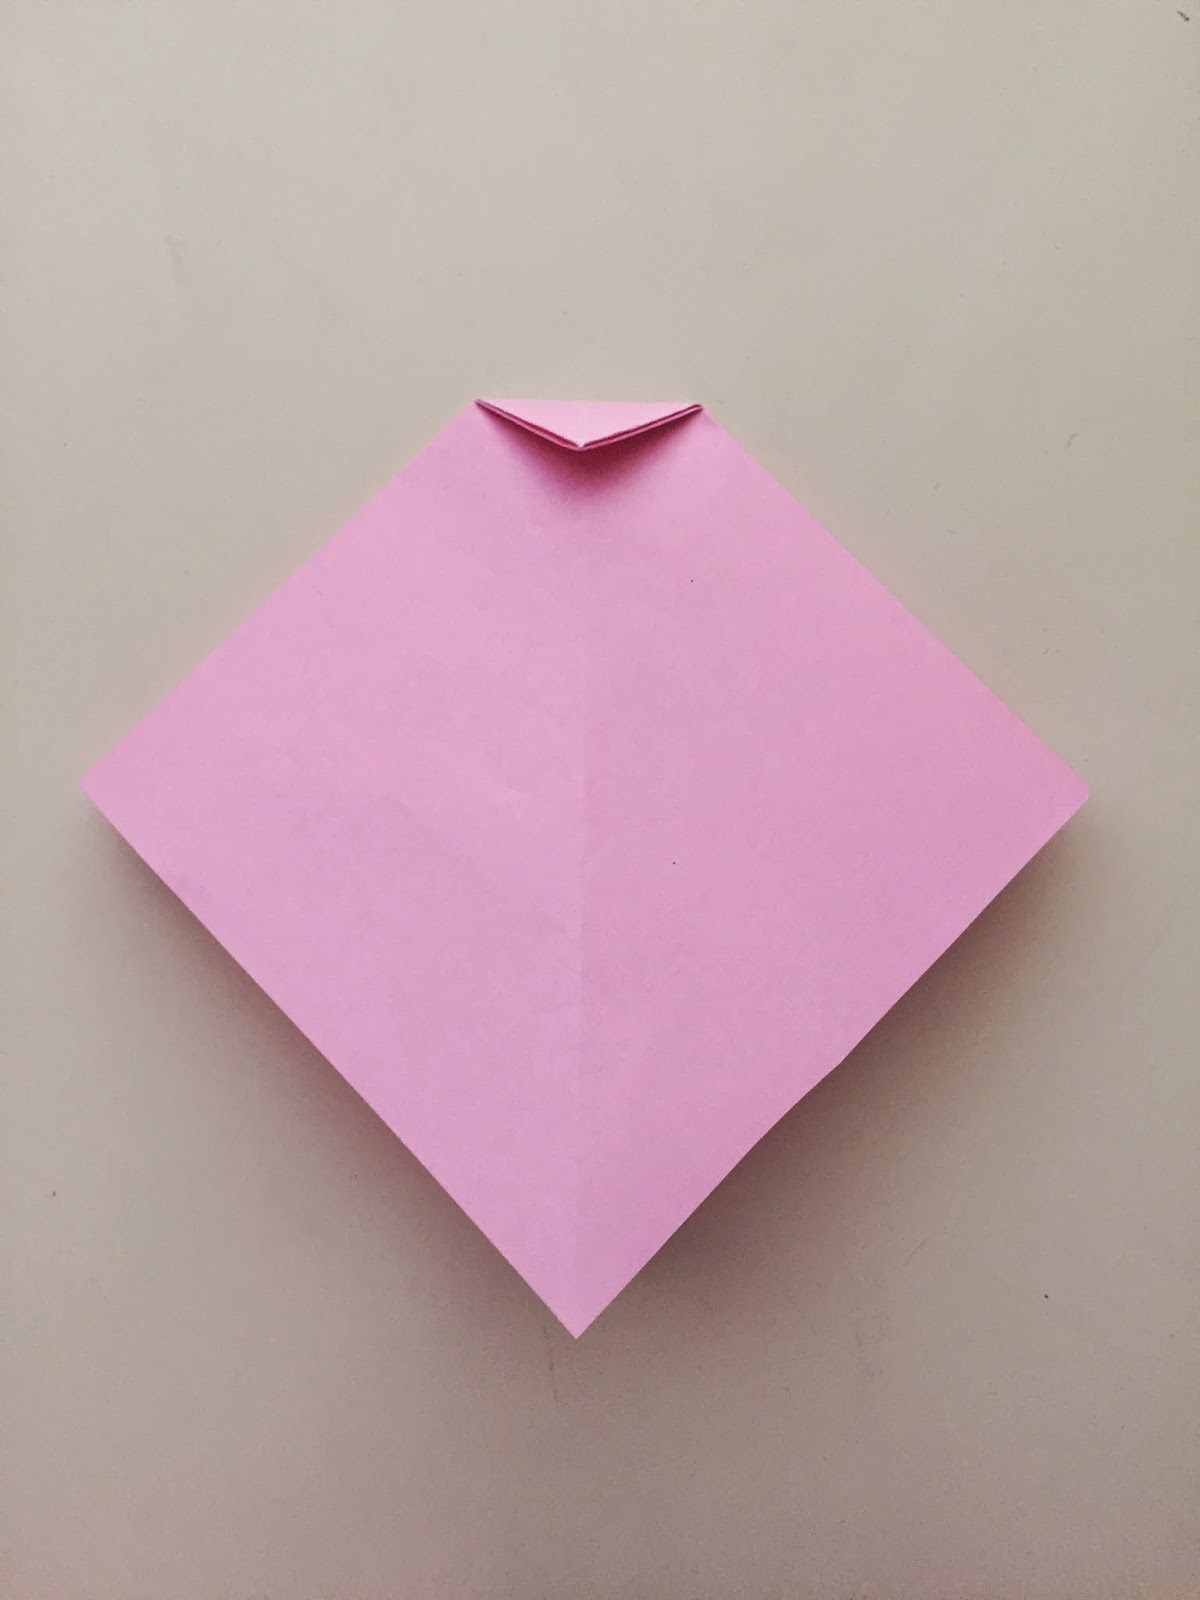 Step by Step Picture Guide to DIY Paper Bows